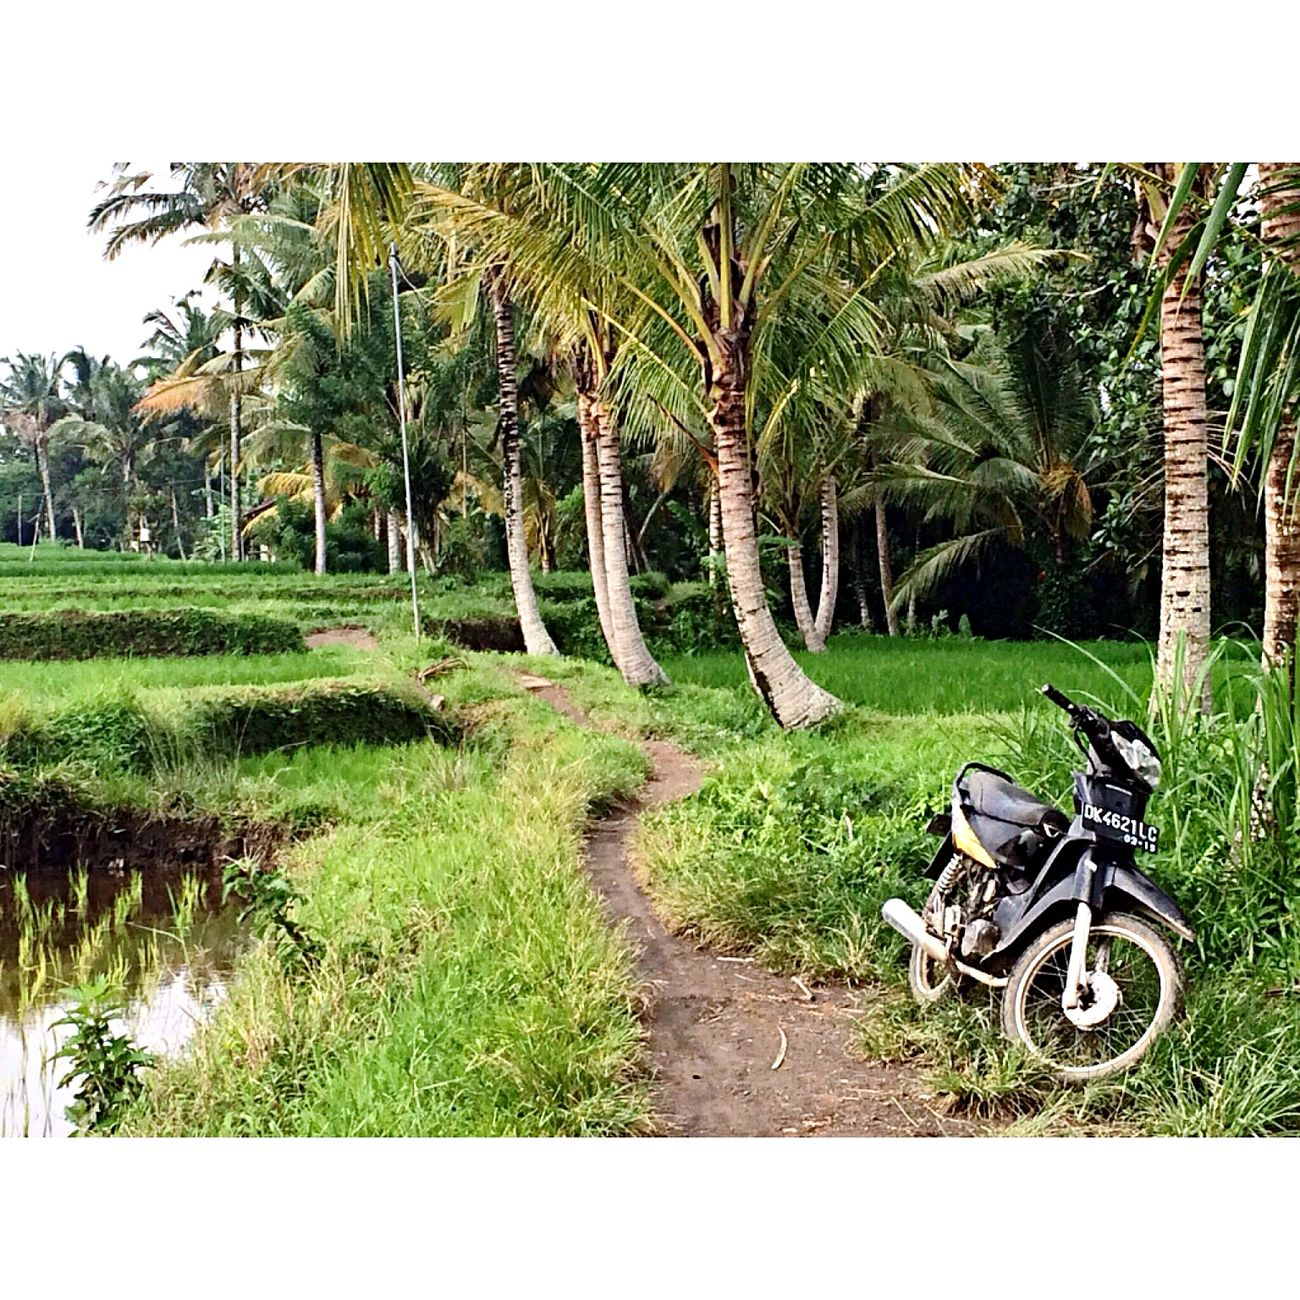 Bali Green Ubud Motorcycles Holiday Trip